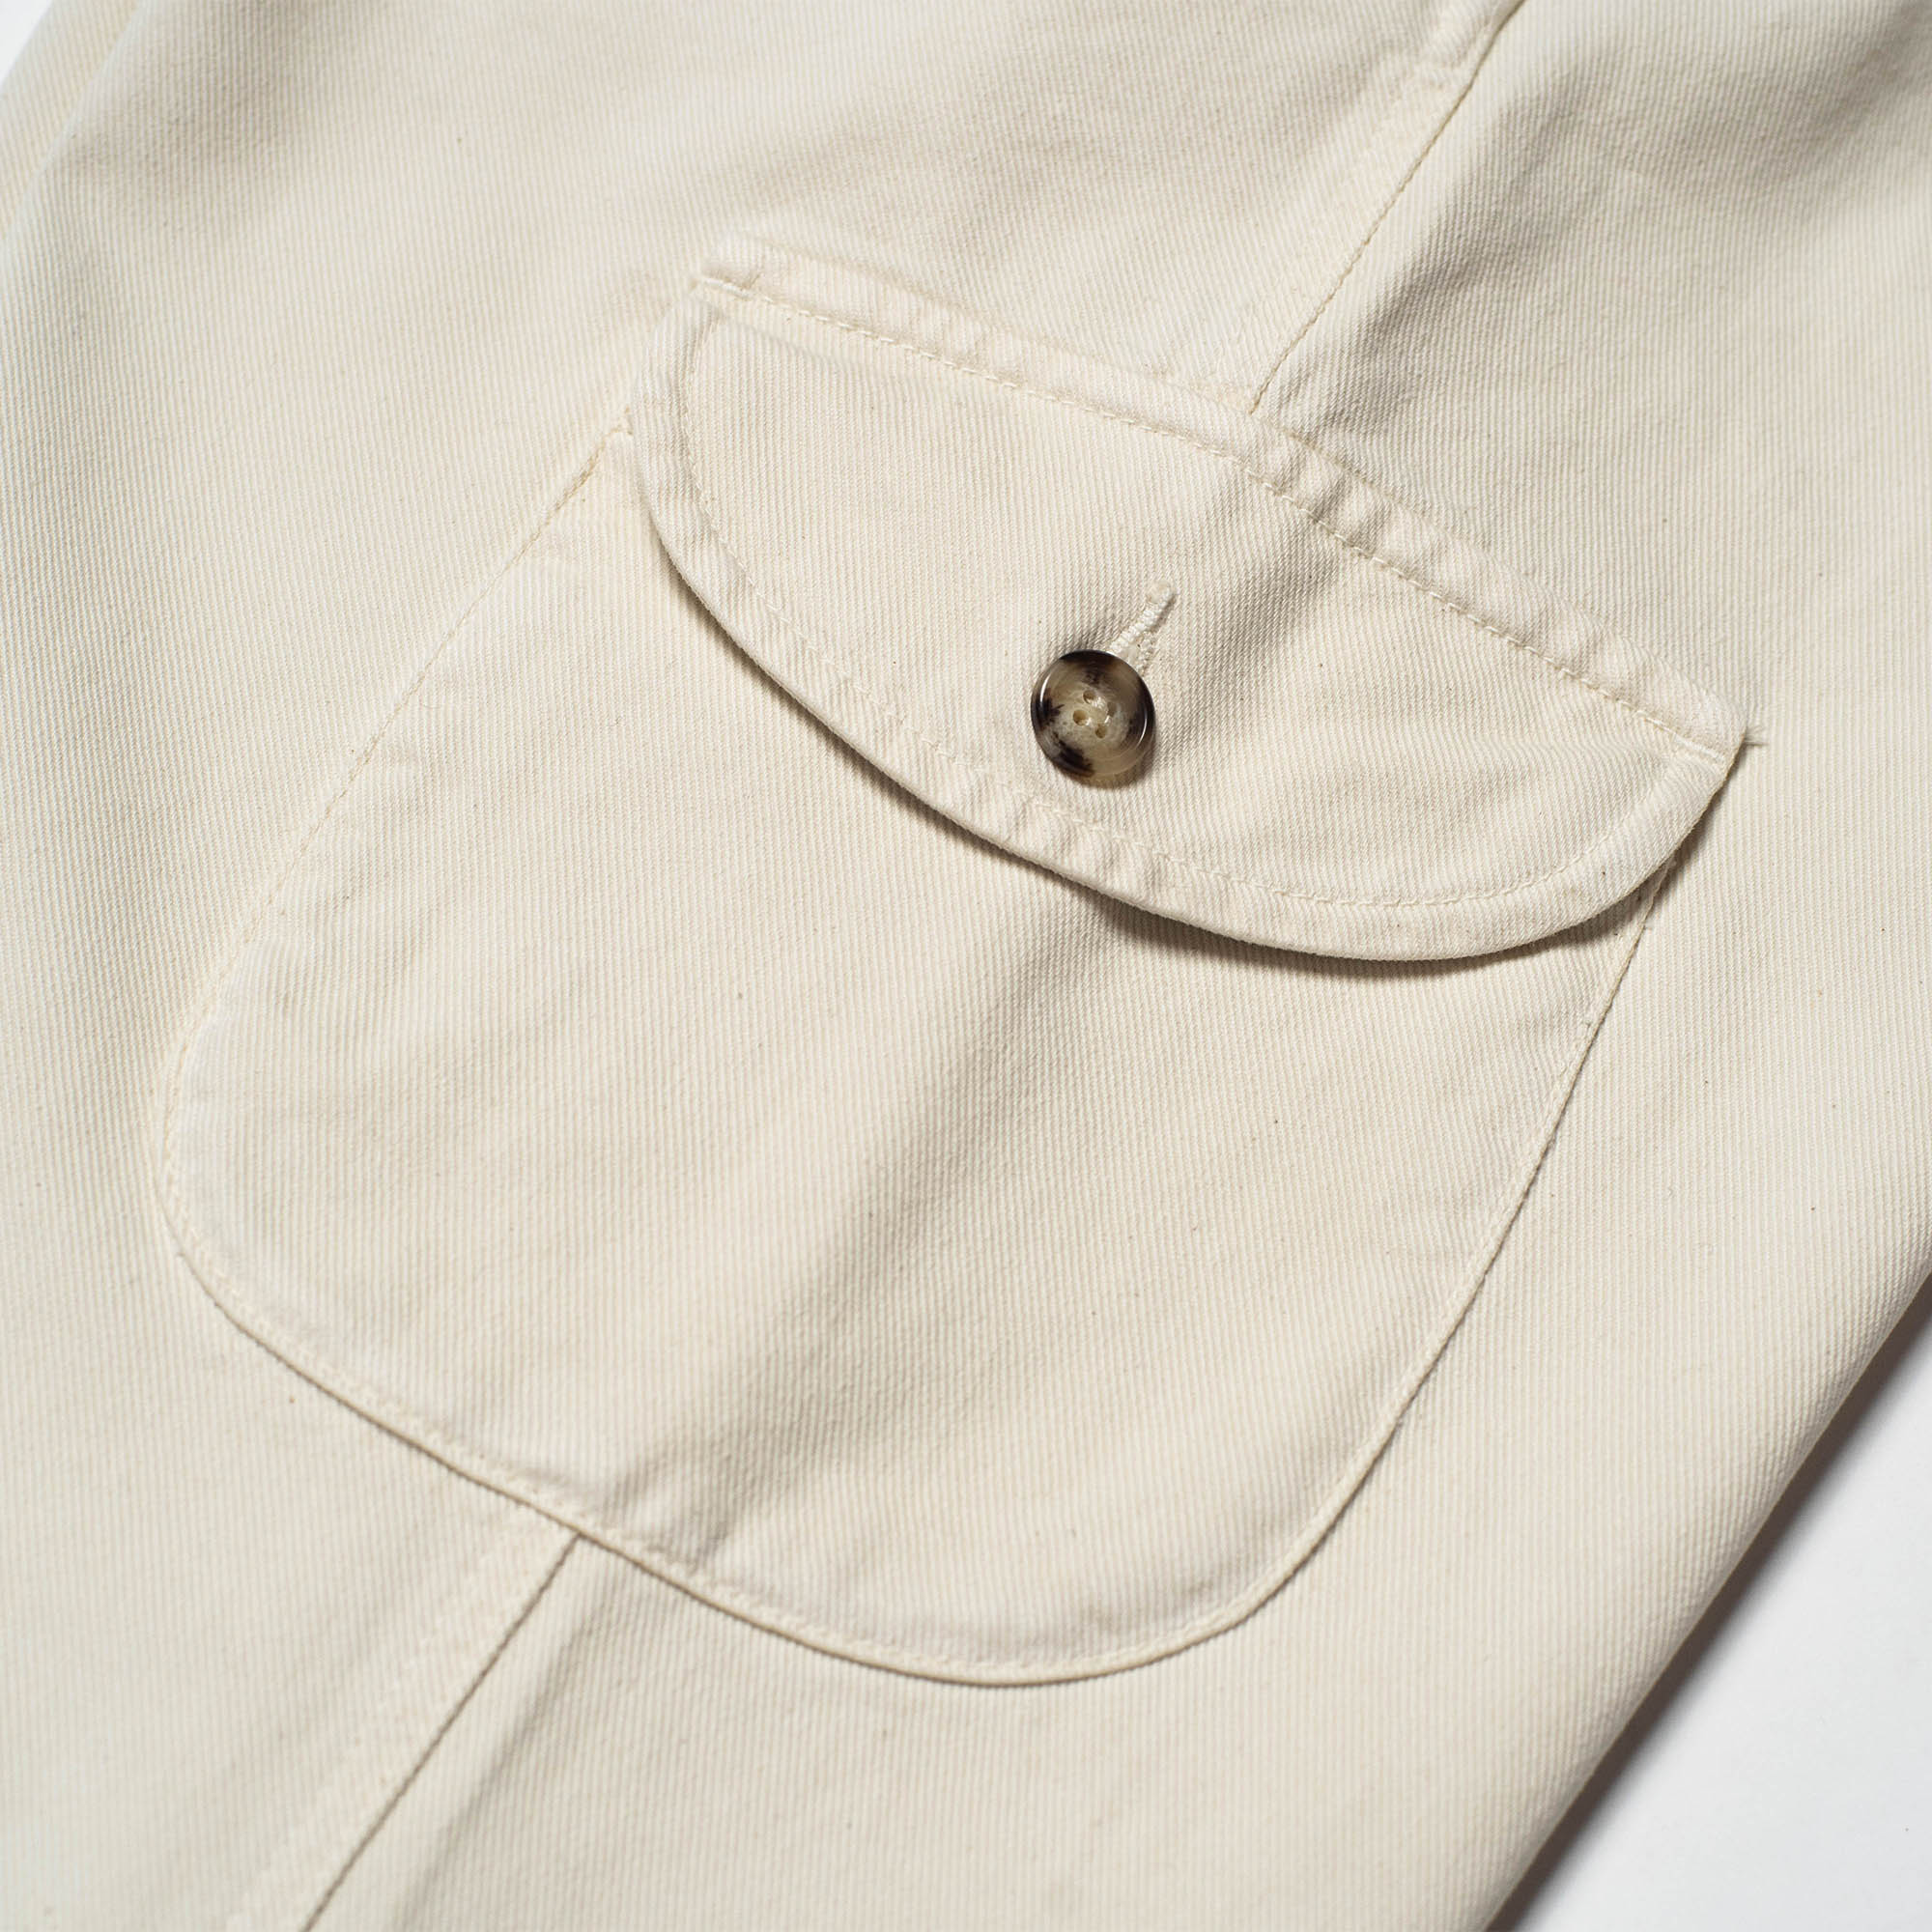 shangri-la-heritage-explorator-white-cotton-twill-pants-still-life-cargo-pocket